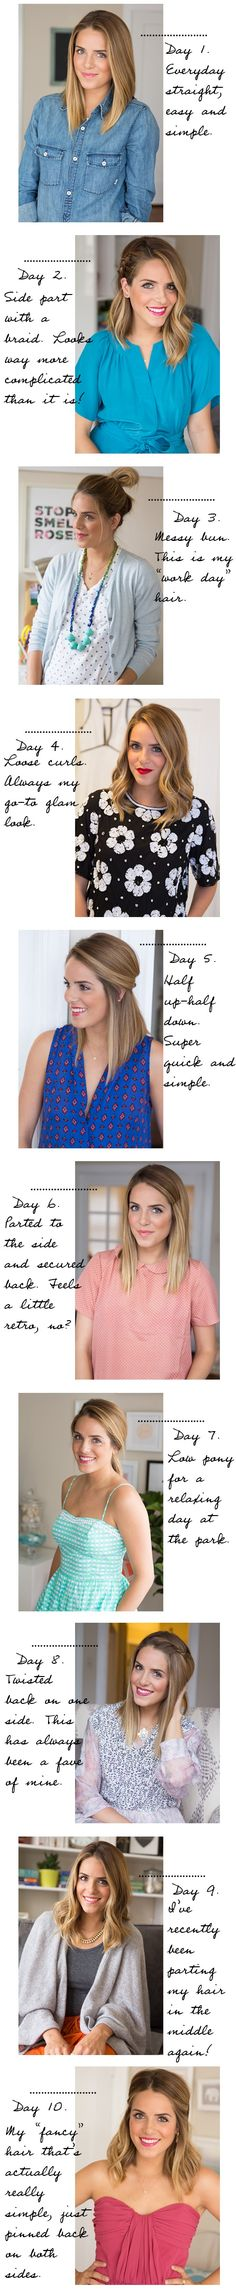 10 Days, 10 Ways to wear your hair. I am thinking about getting this cut because it is super cute and not too short.